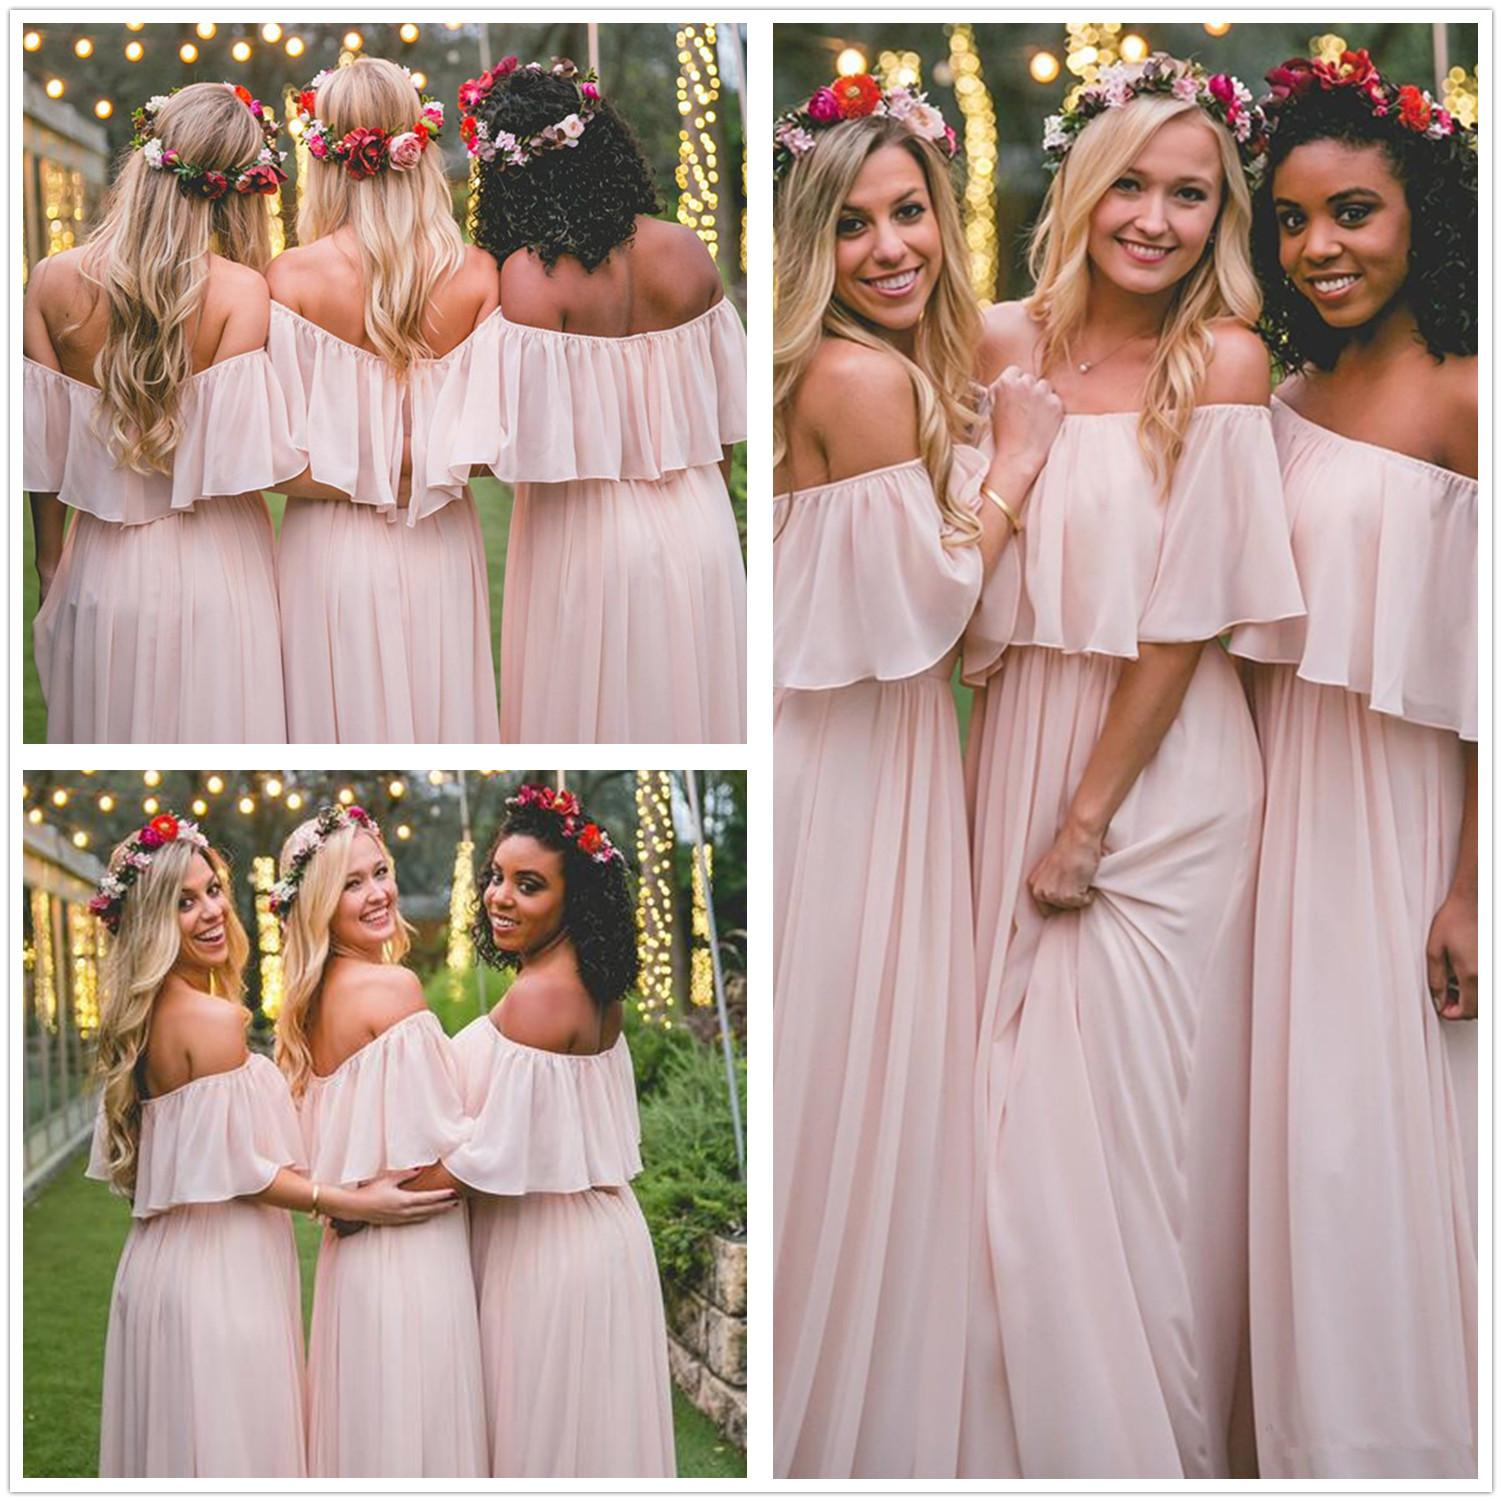 16881ee5fa8 Blush Pink Mumu Long Chiffon Bridesmaid Dresses Off Shoulder A Line Country  Ruffles Boho Maid Of Honors Wedding Guest Dresses Vintage Bridesmaids  Dresses ...